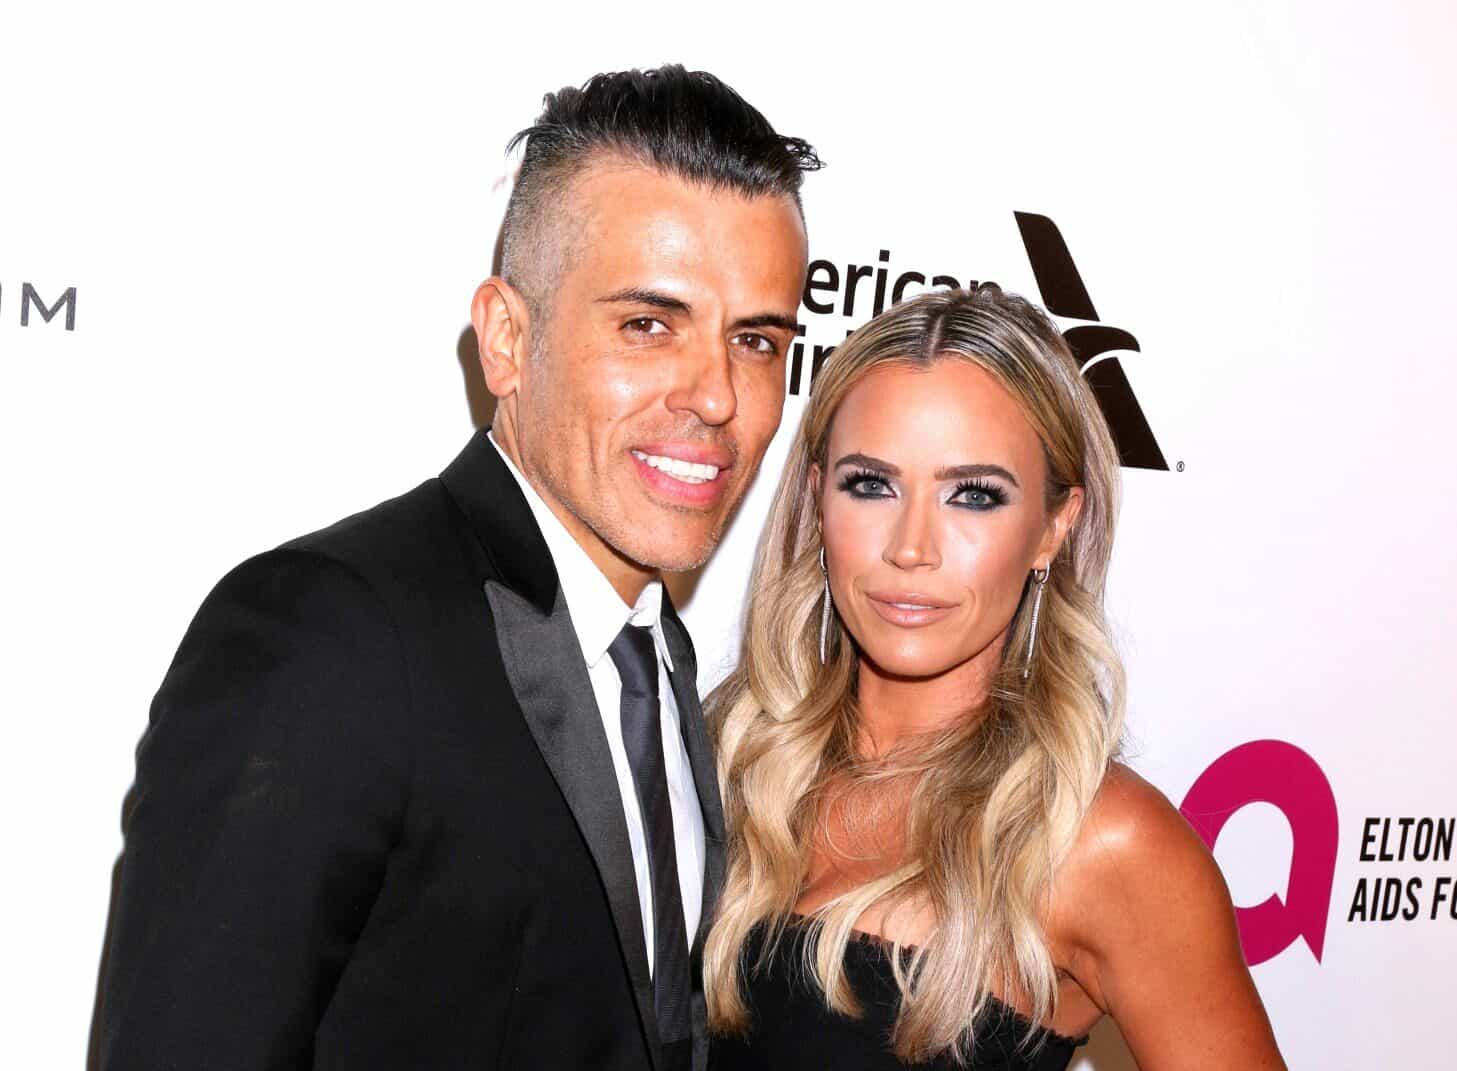 RHOBH Star Teddi Mellencamp Reveals She's Pregnant! Expecting Her 3rd Child With Husband Edwin Arroyave, Did She Go Through IVF?